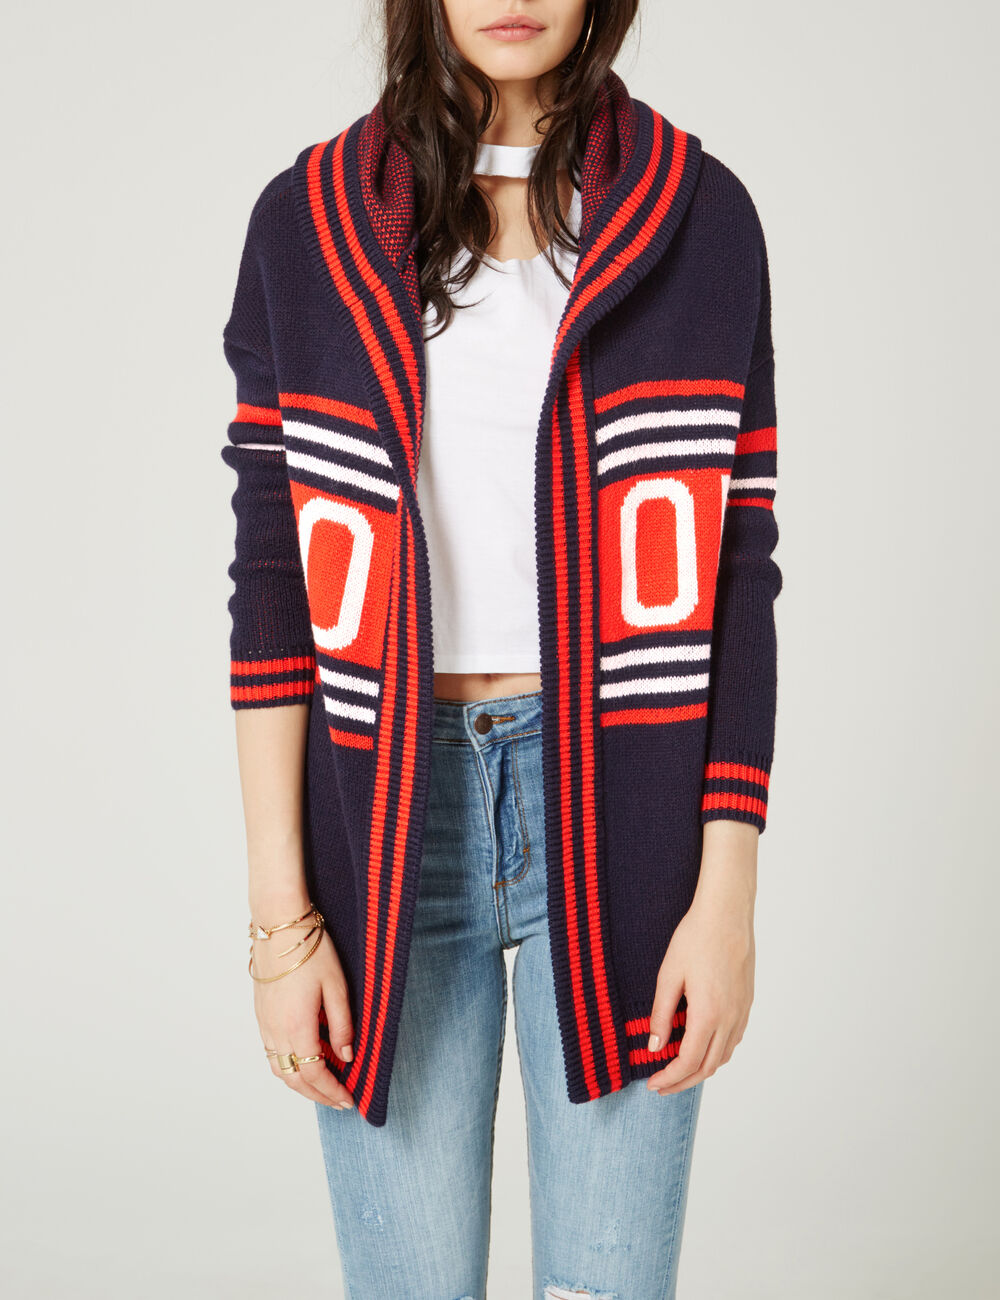 Navy blue, red and cream hooded cardigan woman • Jennyfer